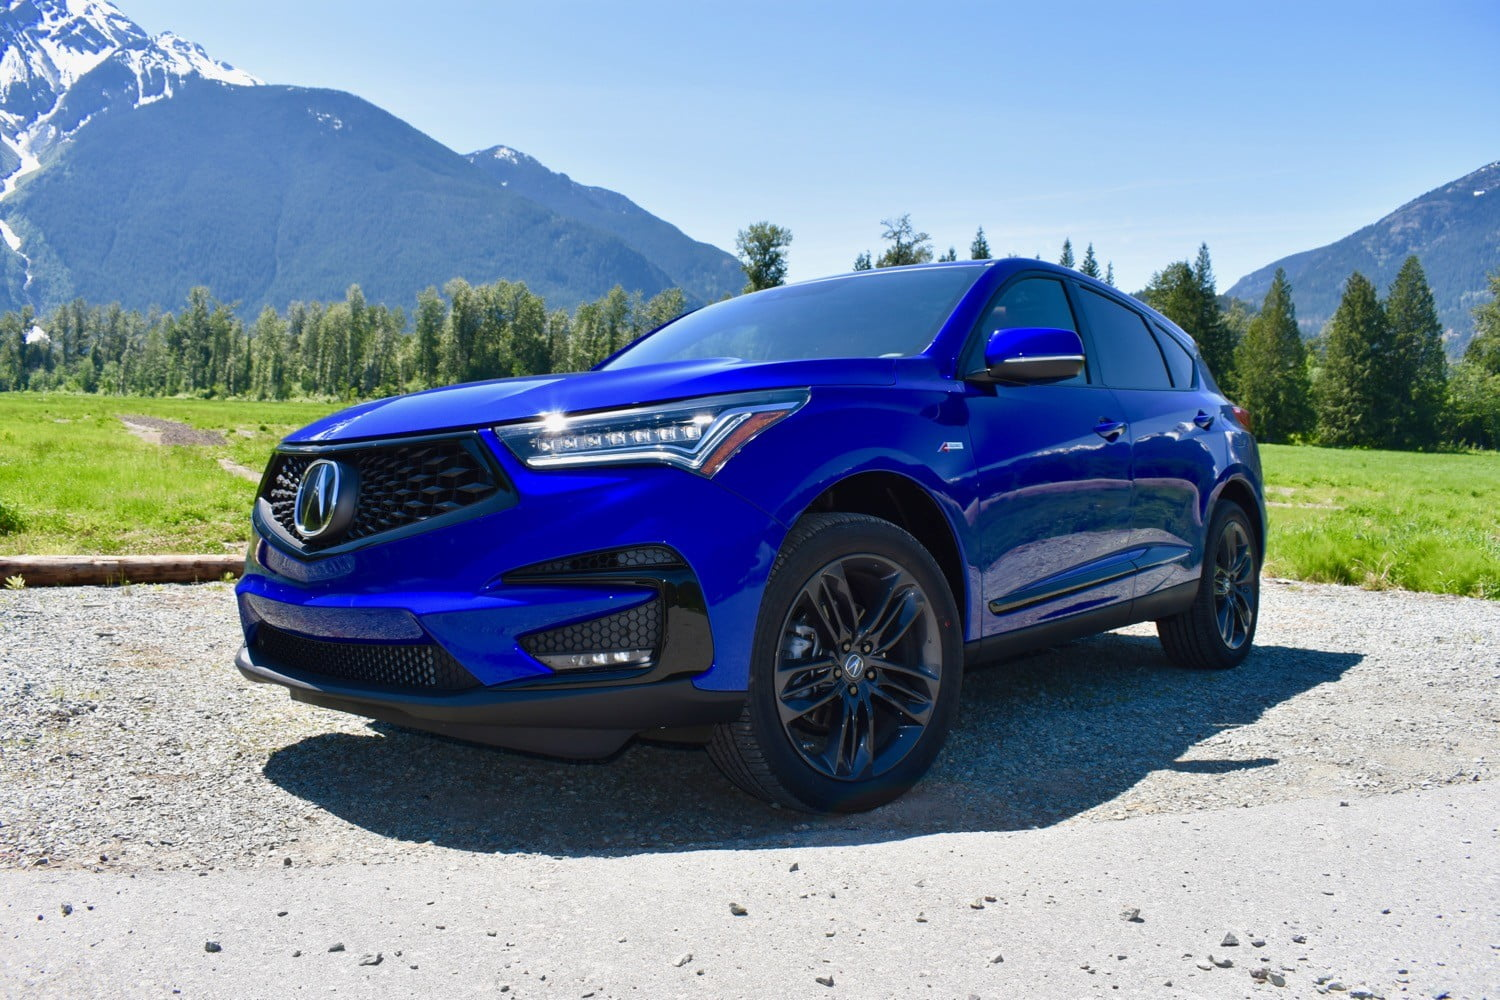 2019 Acura Rdx Compact Luxury Suv Starts At 38 295 Digital Trends